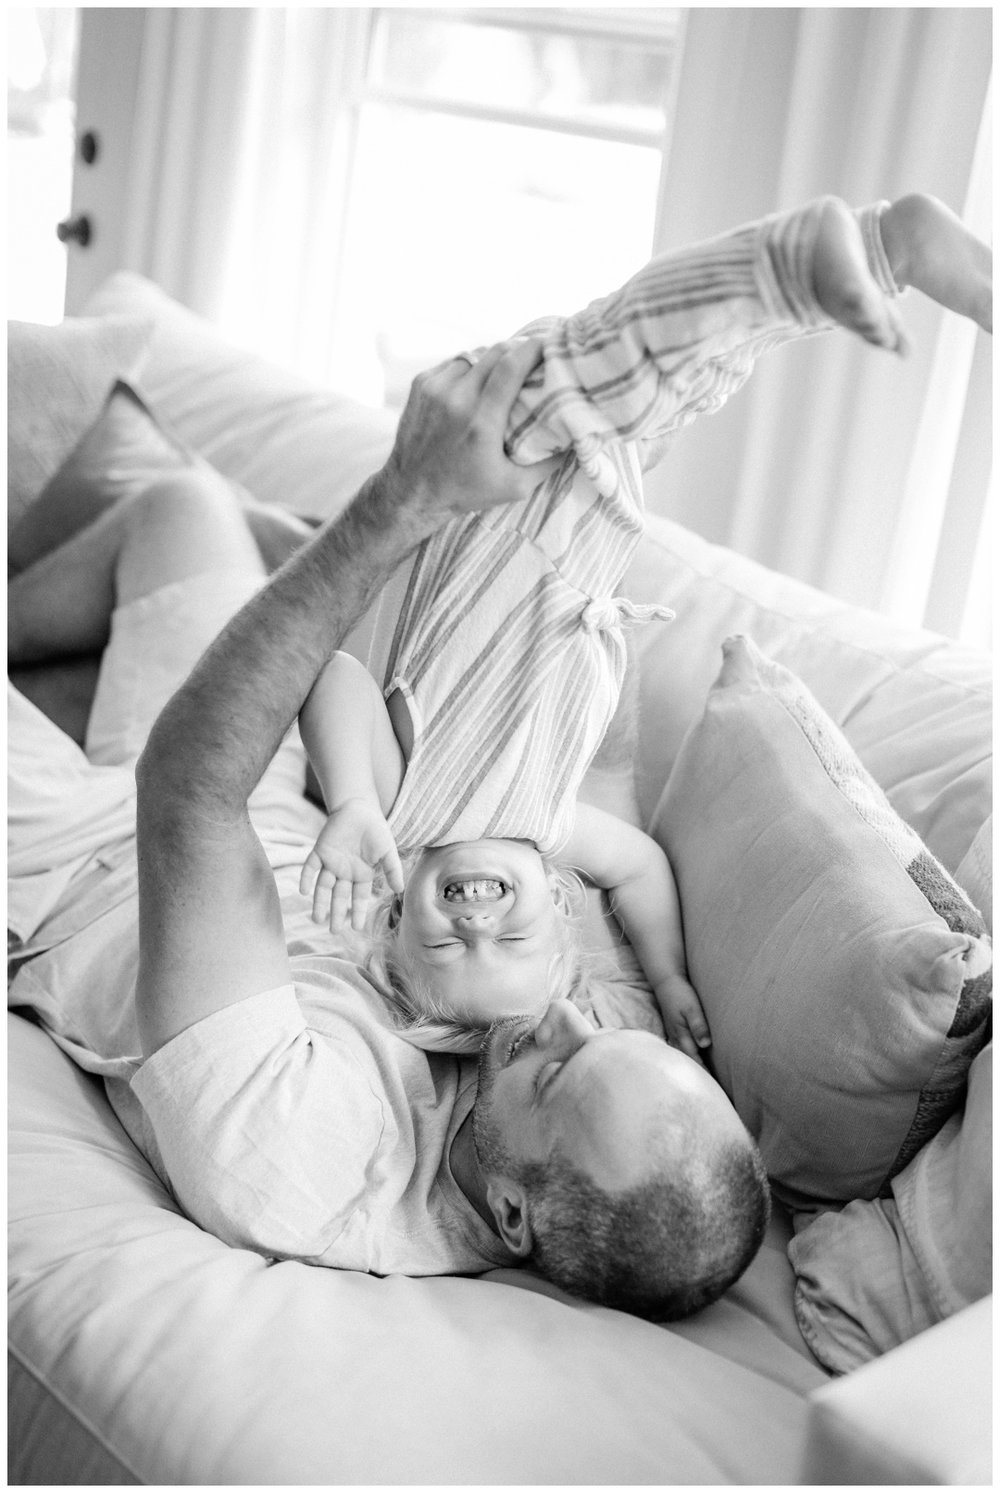 Newport_Beach_Lifestyle_in-Home_Photographer_Newport_Beach_In-Home_Photography_Orange_County_Photographer_Cori_Kleckner_Photography_Orange_County_in-home_Photography_Kristin_Dinsmore_Family_session_1954.jpg